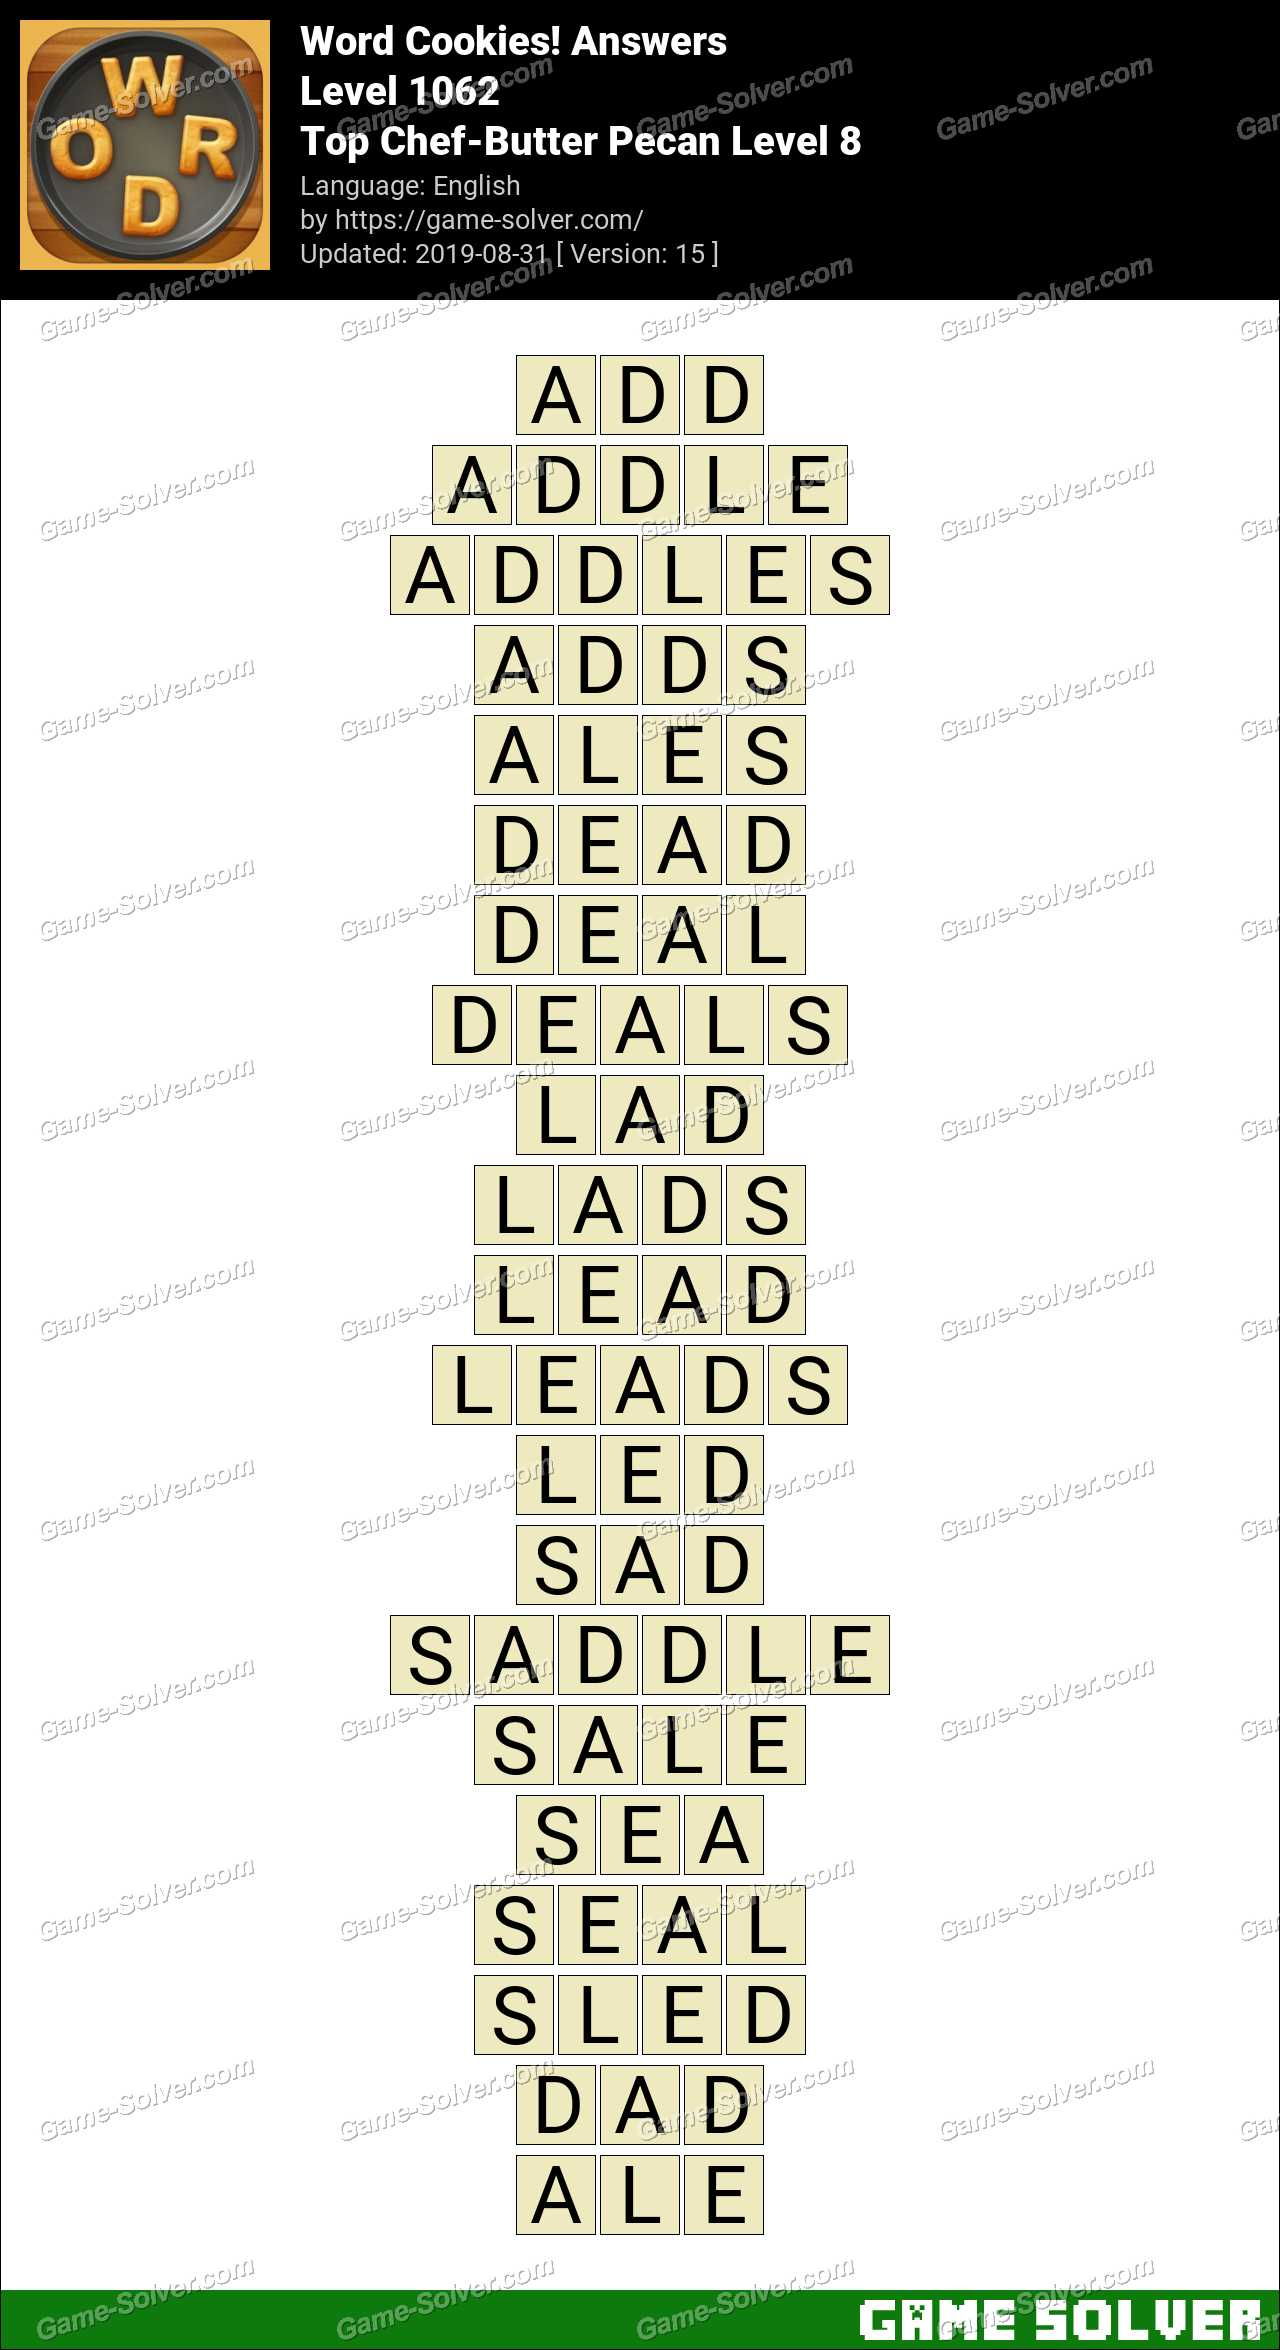 Word Cookies Top Chef-Butter Pecan Level 8 Answers